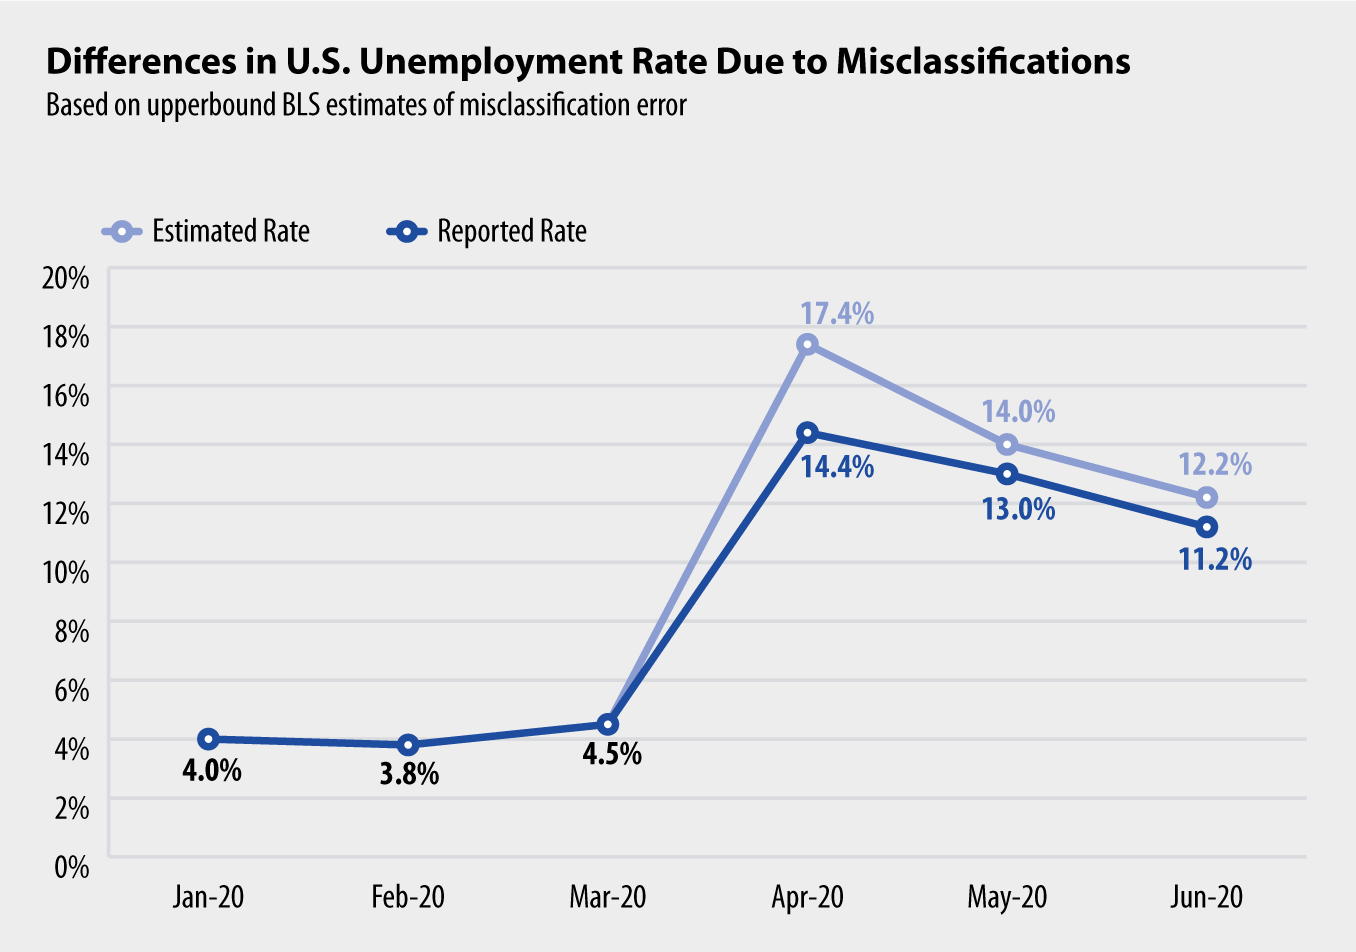 Differences in U.S. Unemployment Rate Due to Misclassifications